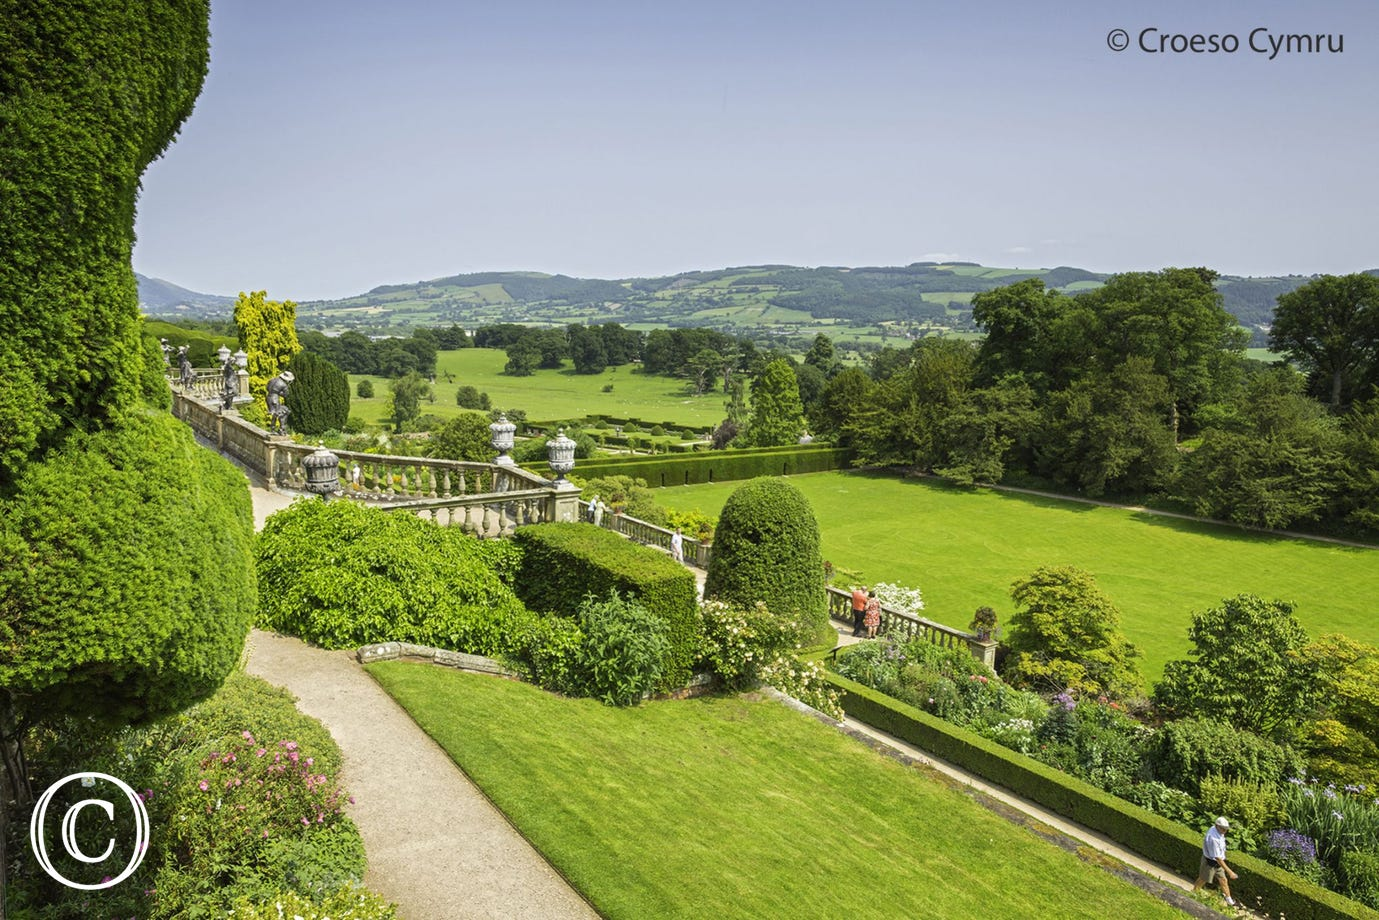 The gardens at Powis Castle